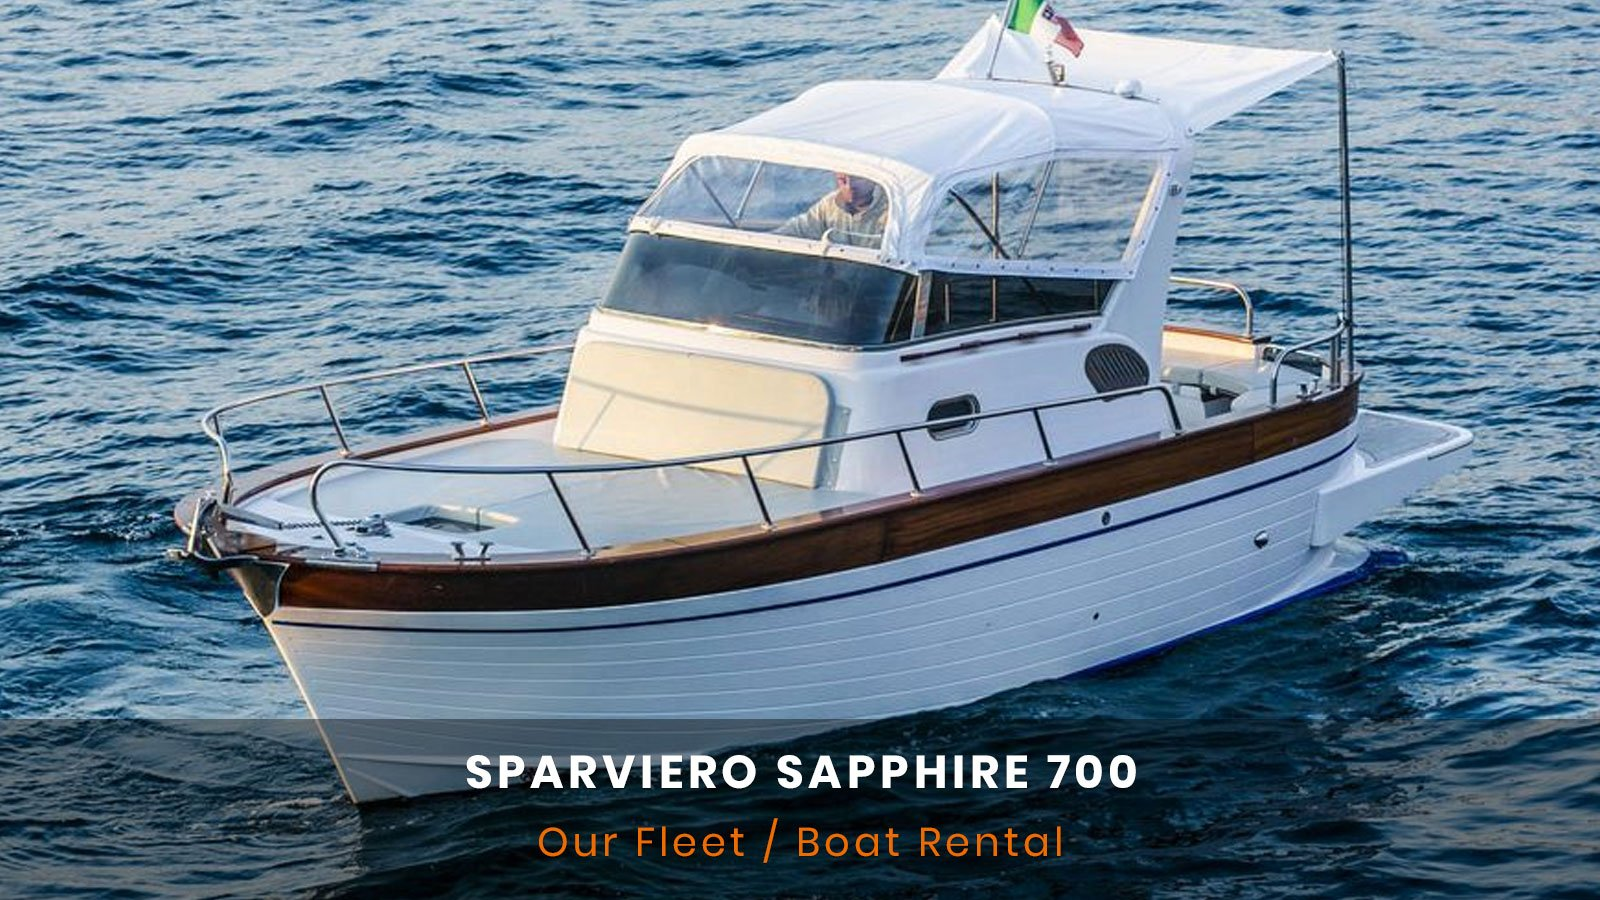 Sparviero Sapphire 700 Rent Boat